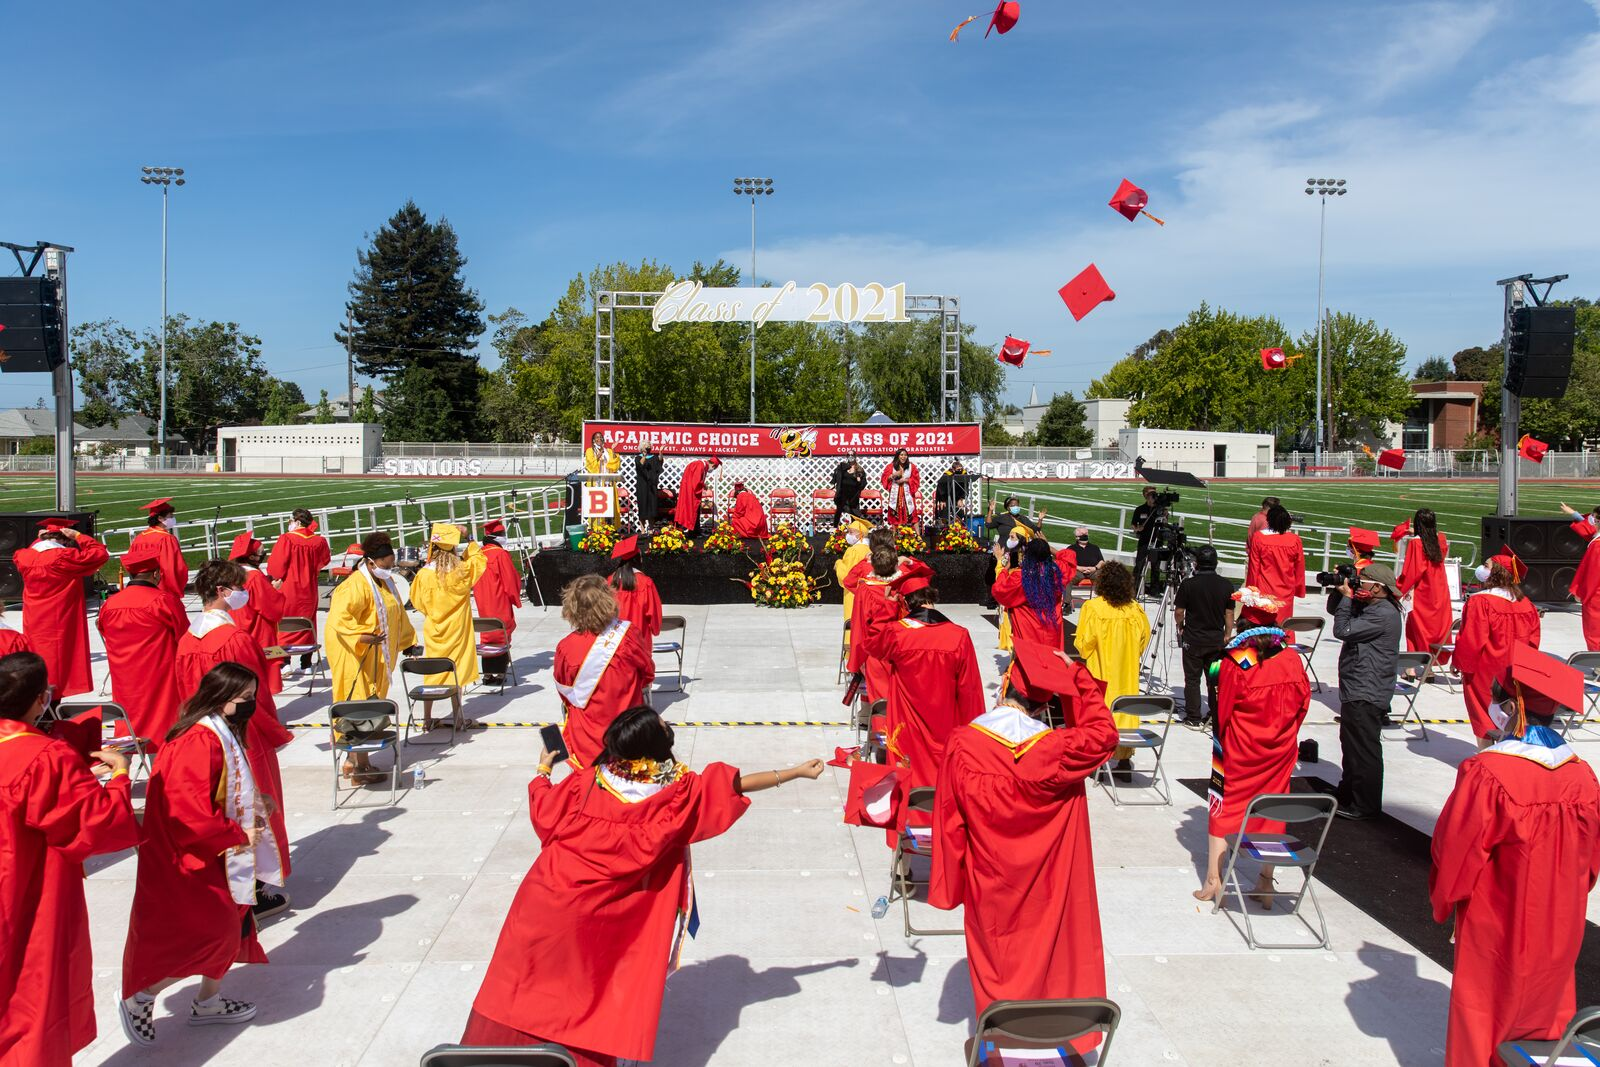 Graduates toss their caps in the air during the Academic Choice graduation ceremony at Berkeley High School on June 5, 2021. Credit: Kelly Sullivan